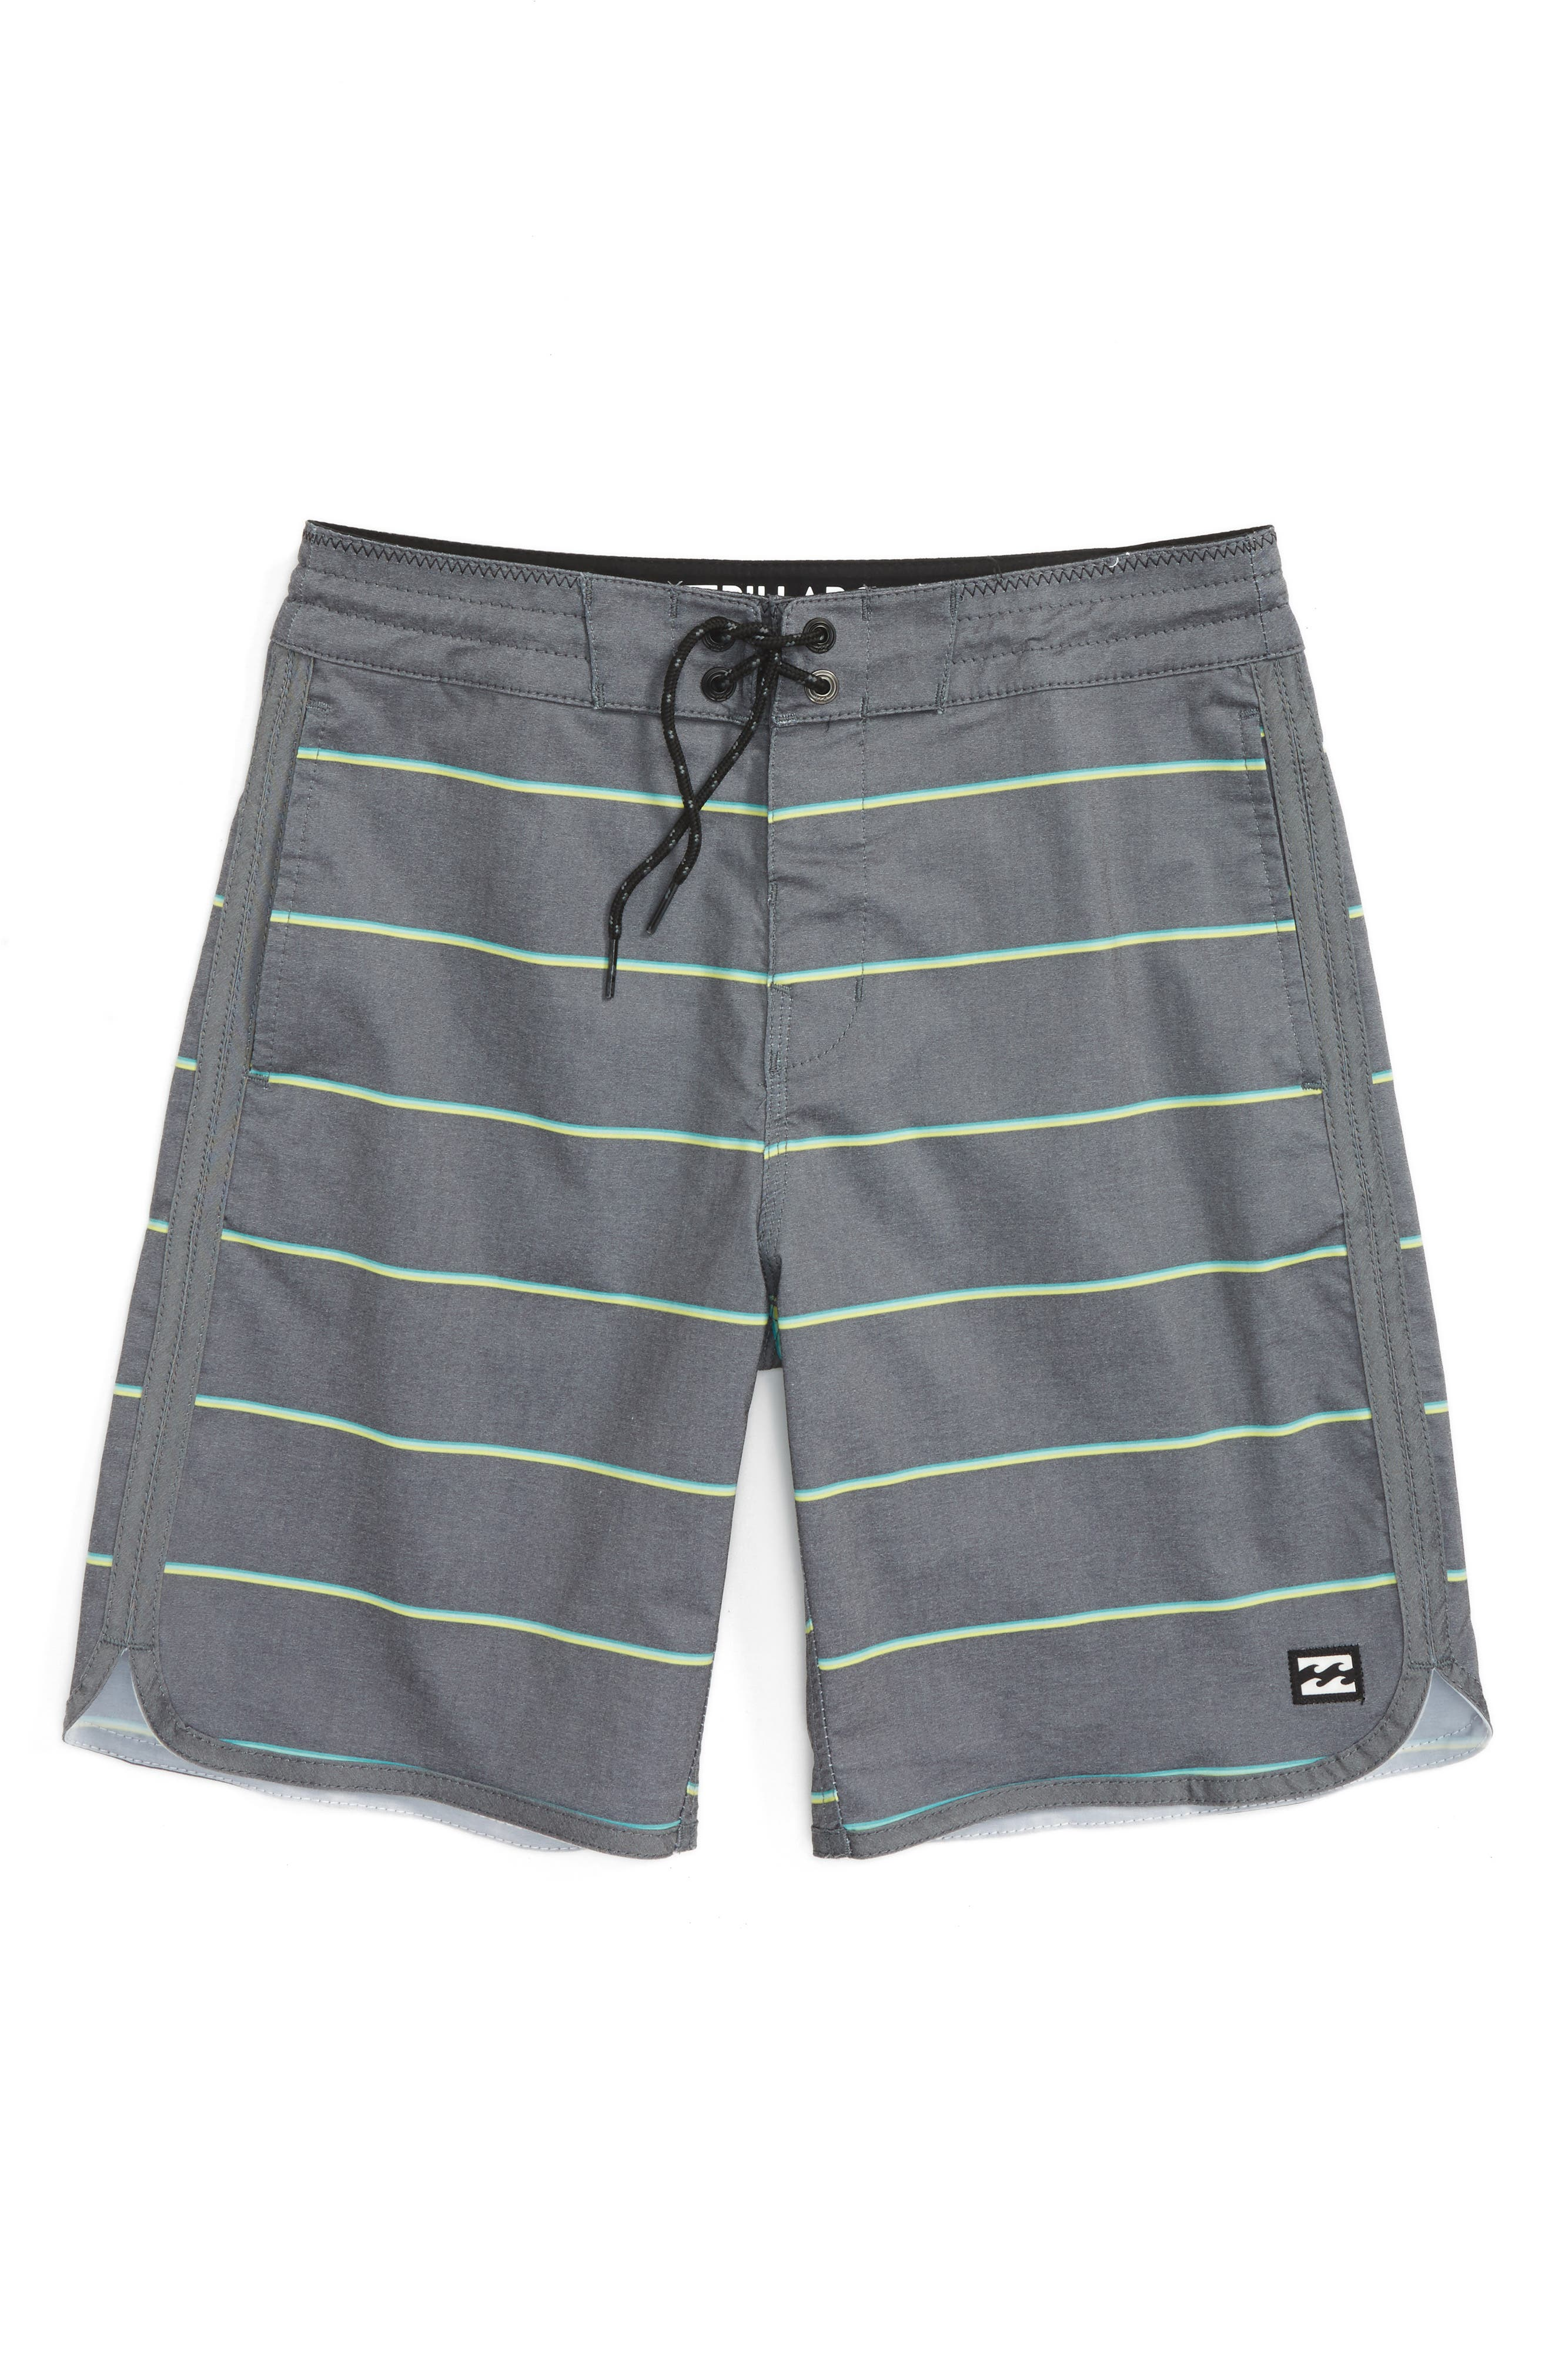 Billabong 73 Lo Tides Board Shorts (Big Boys)